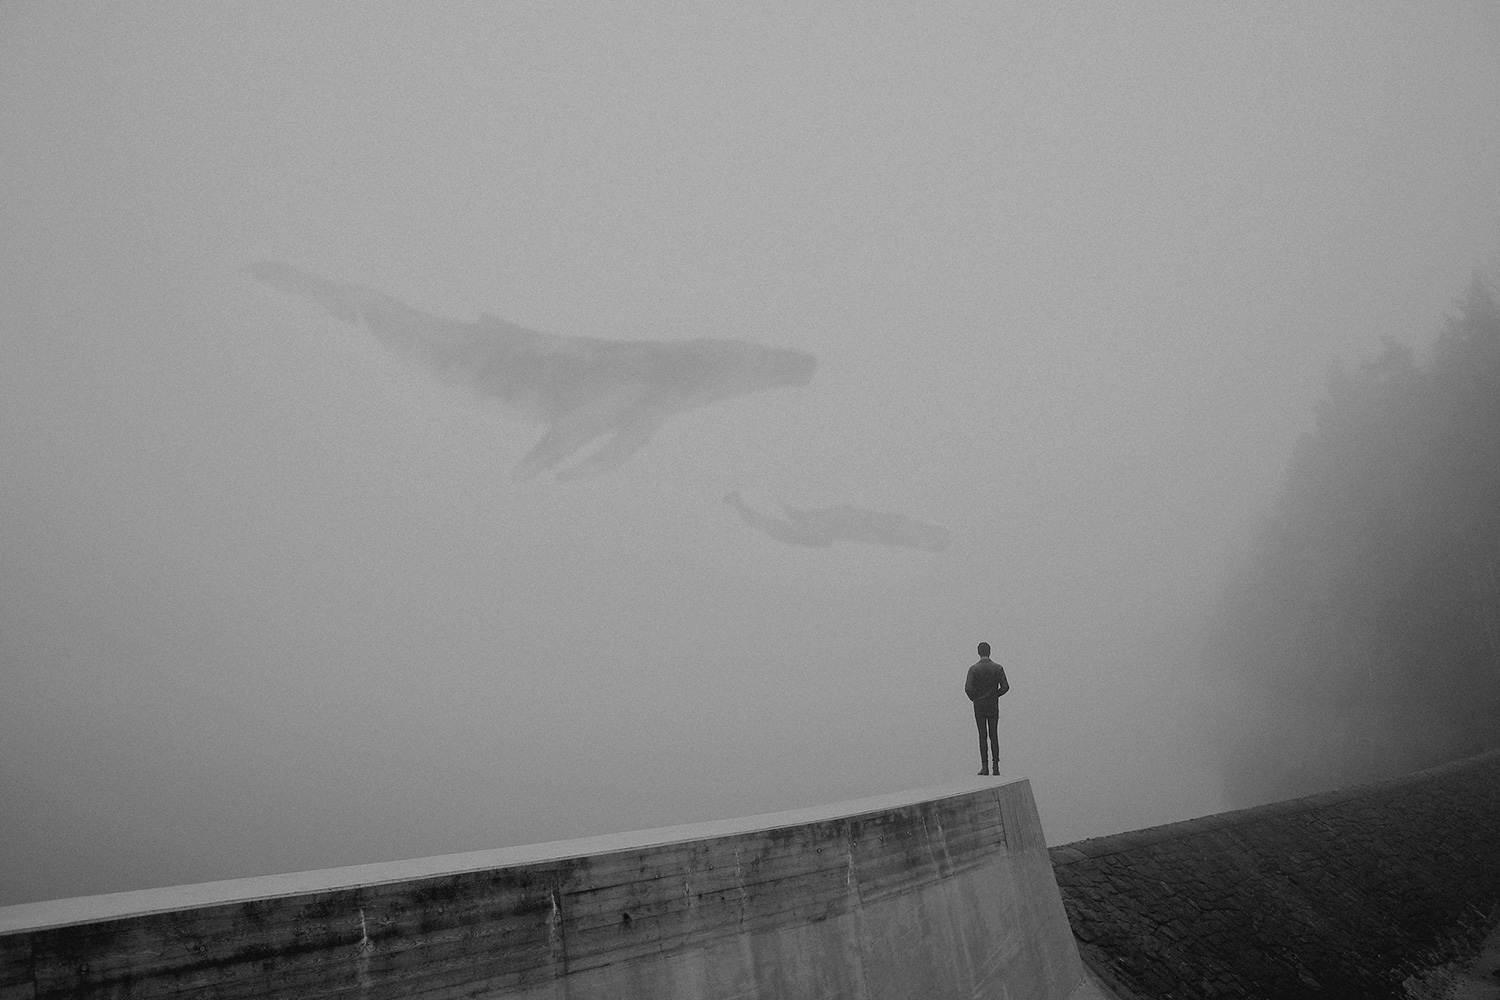 Martin Vlach - figure on roof, whale in sky